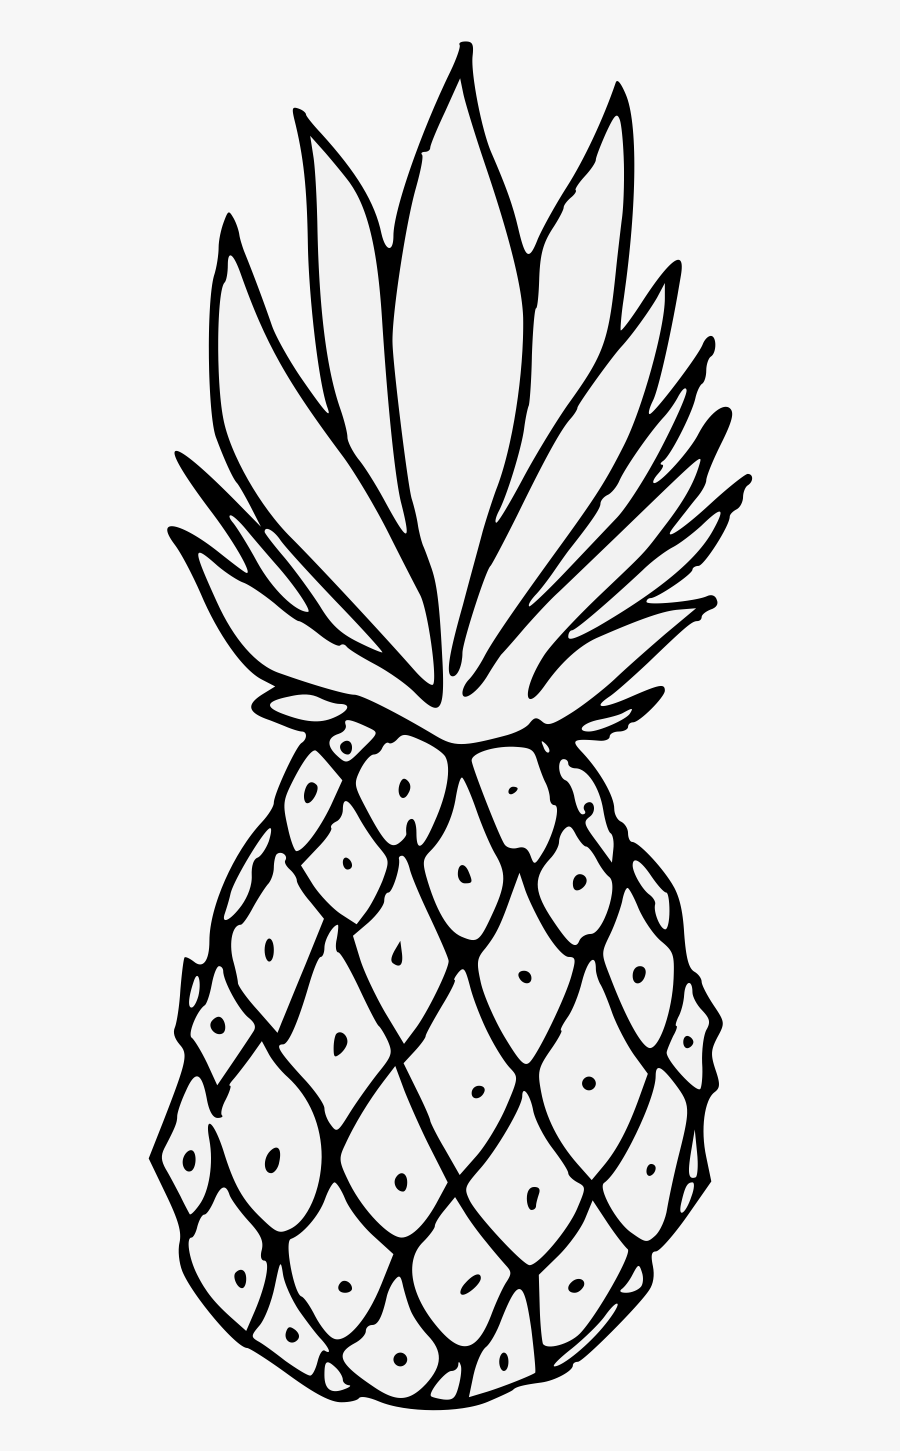 Pineapple Png Black And White, Transparent Clipart